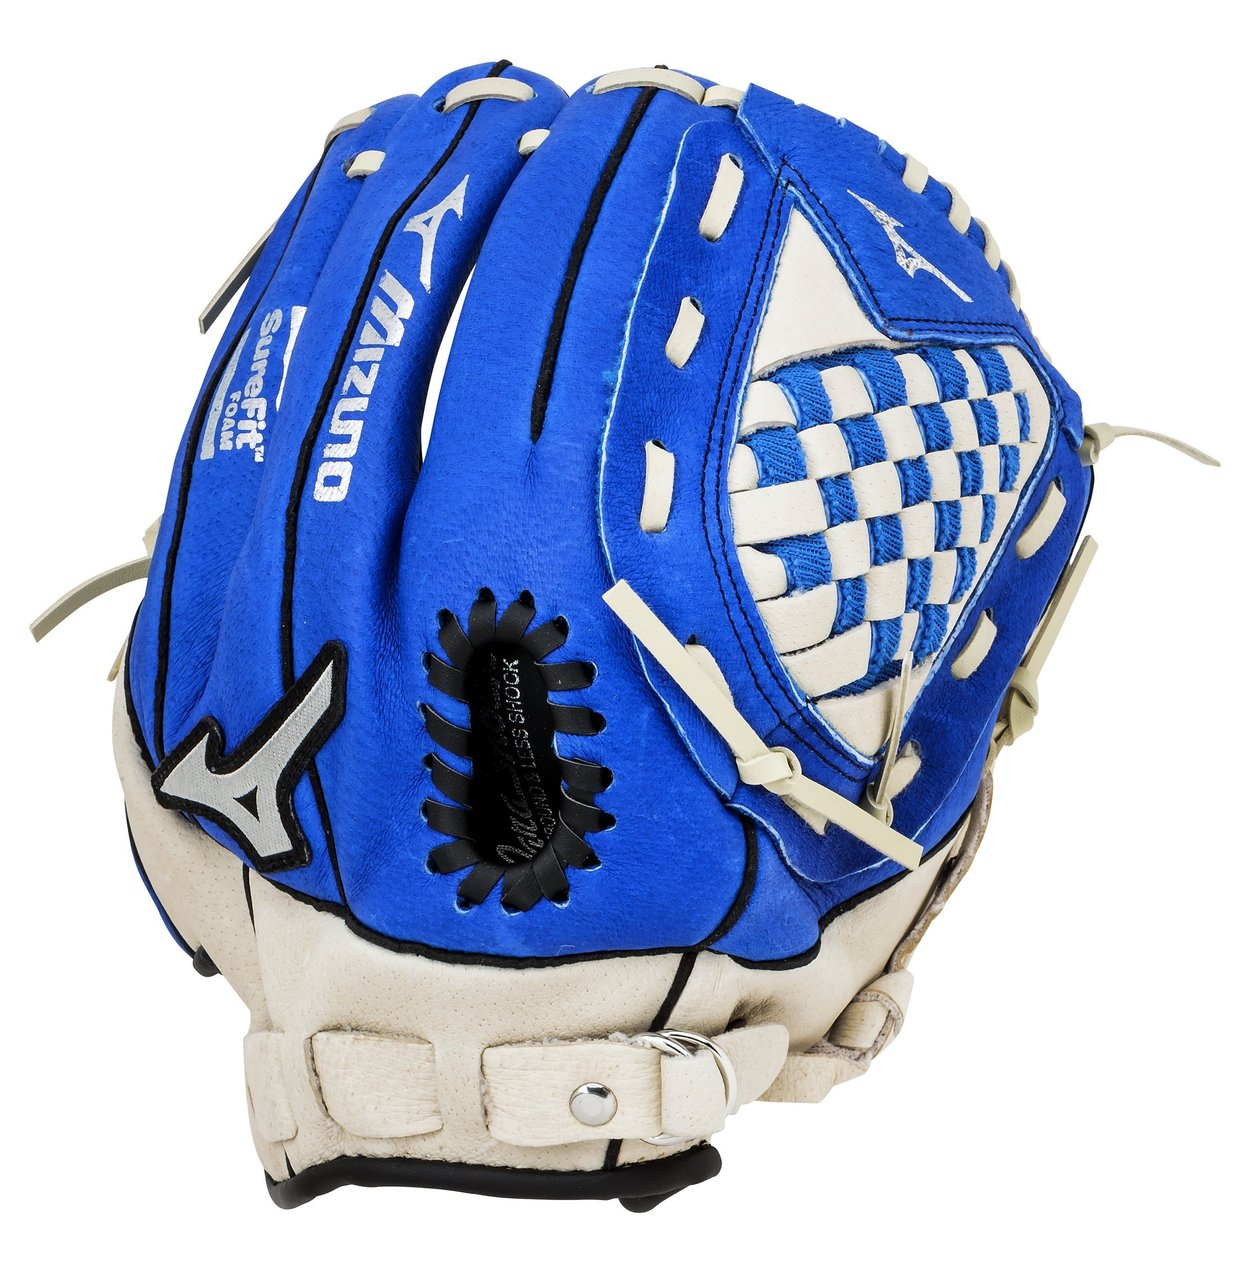 mizuno-prospect-series-youth-10-75-royal-baseball-glove-left-handed-throw GPP1075Y1RY-Left Handed Throw Mizuno 041969127889 The Prospect is made to help younger players fall in love